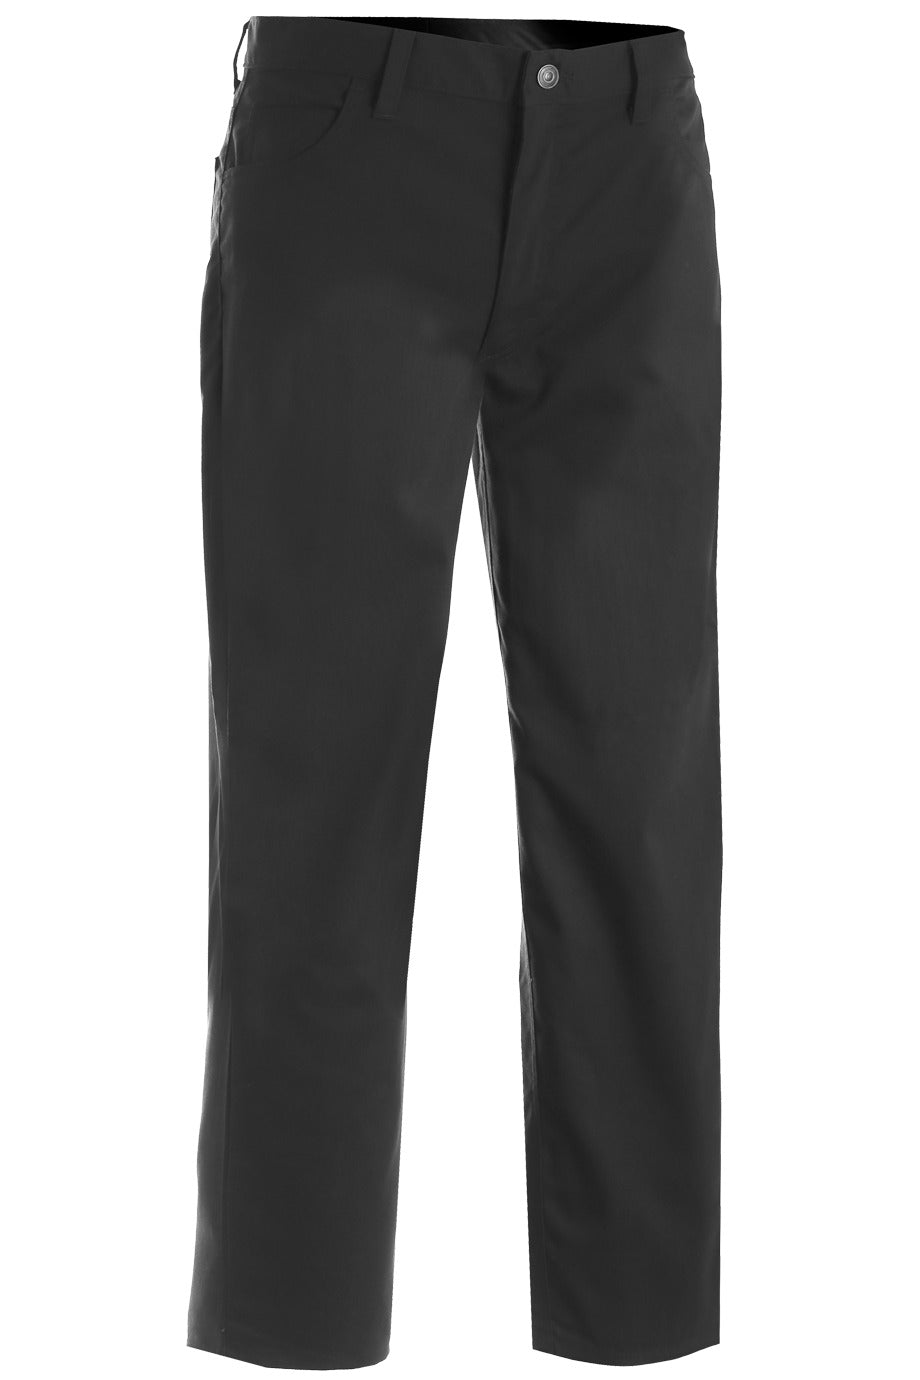 Men's Black Rugged Comfort Flat Front Pant